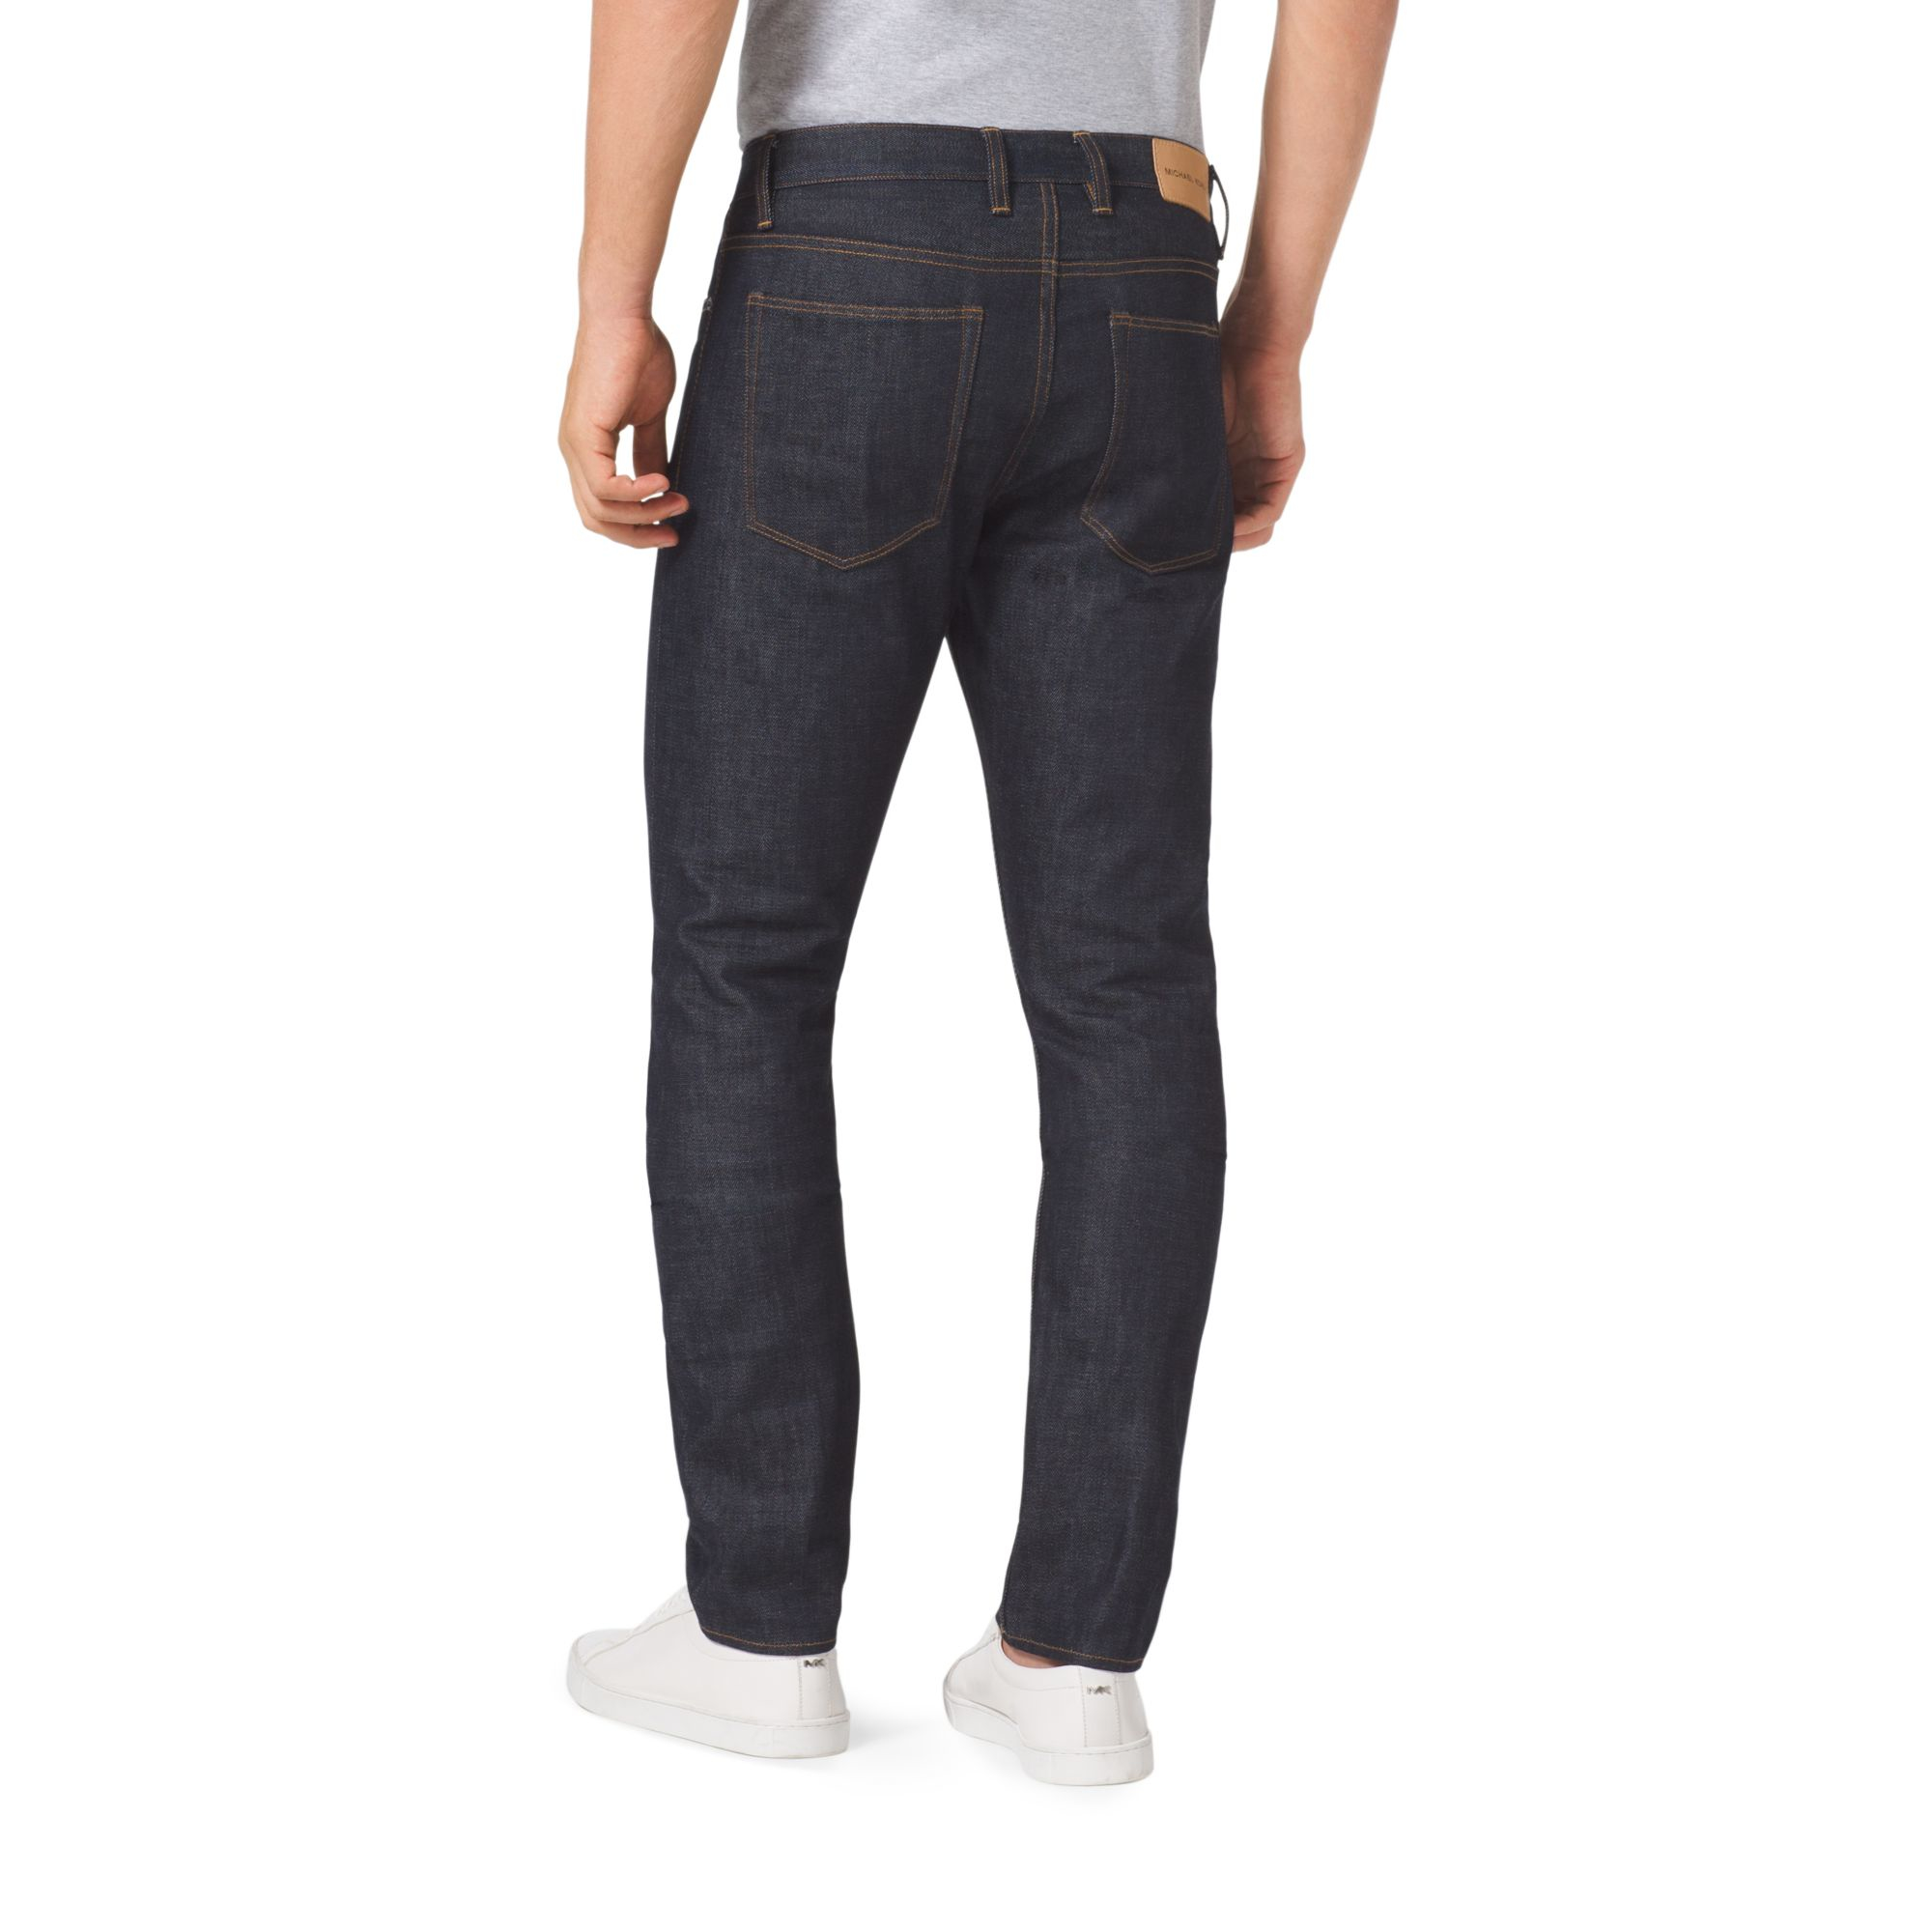 michael kors slim fit selvedge jeans in blue for men lyst. Black Bedroom Furniture Sets. Home Design Ideas